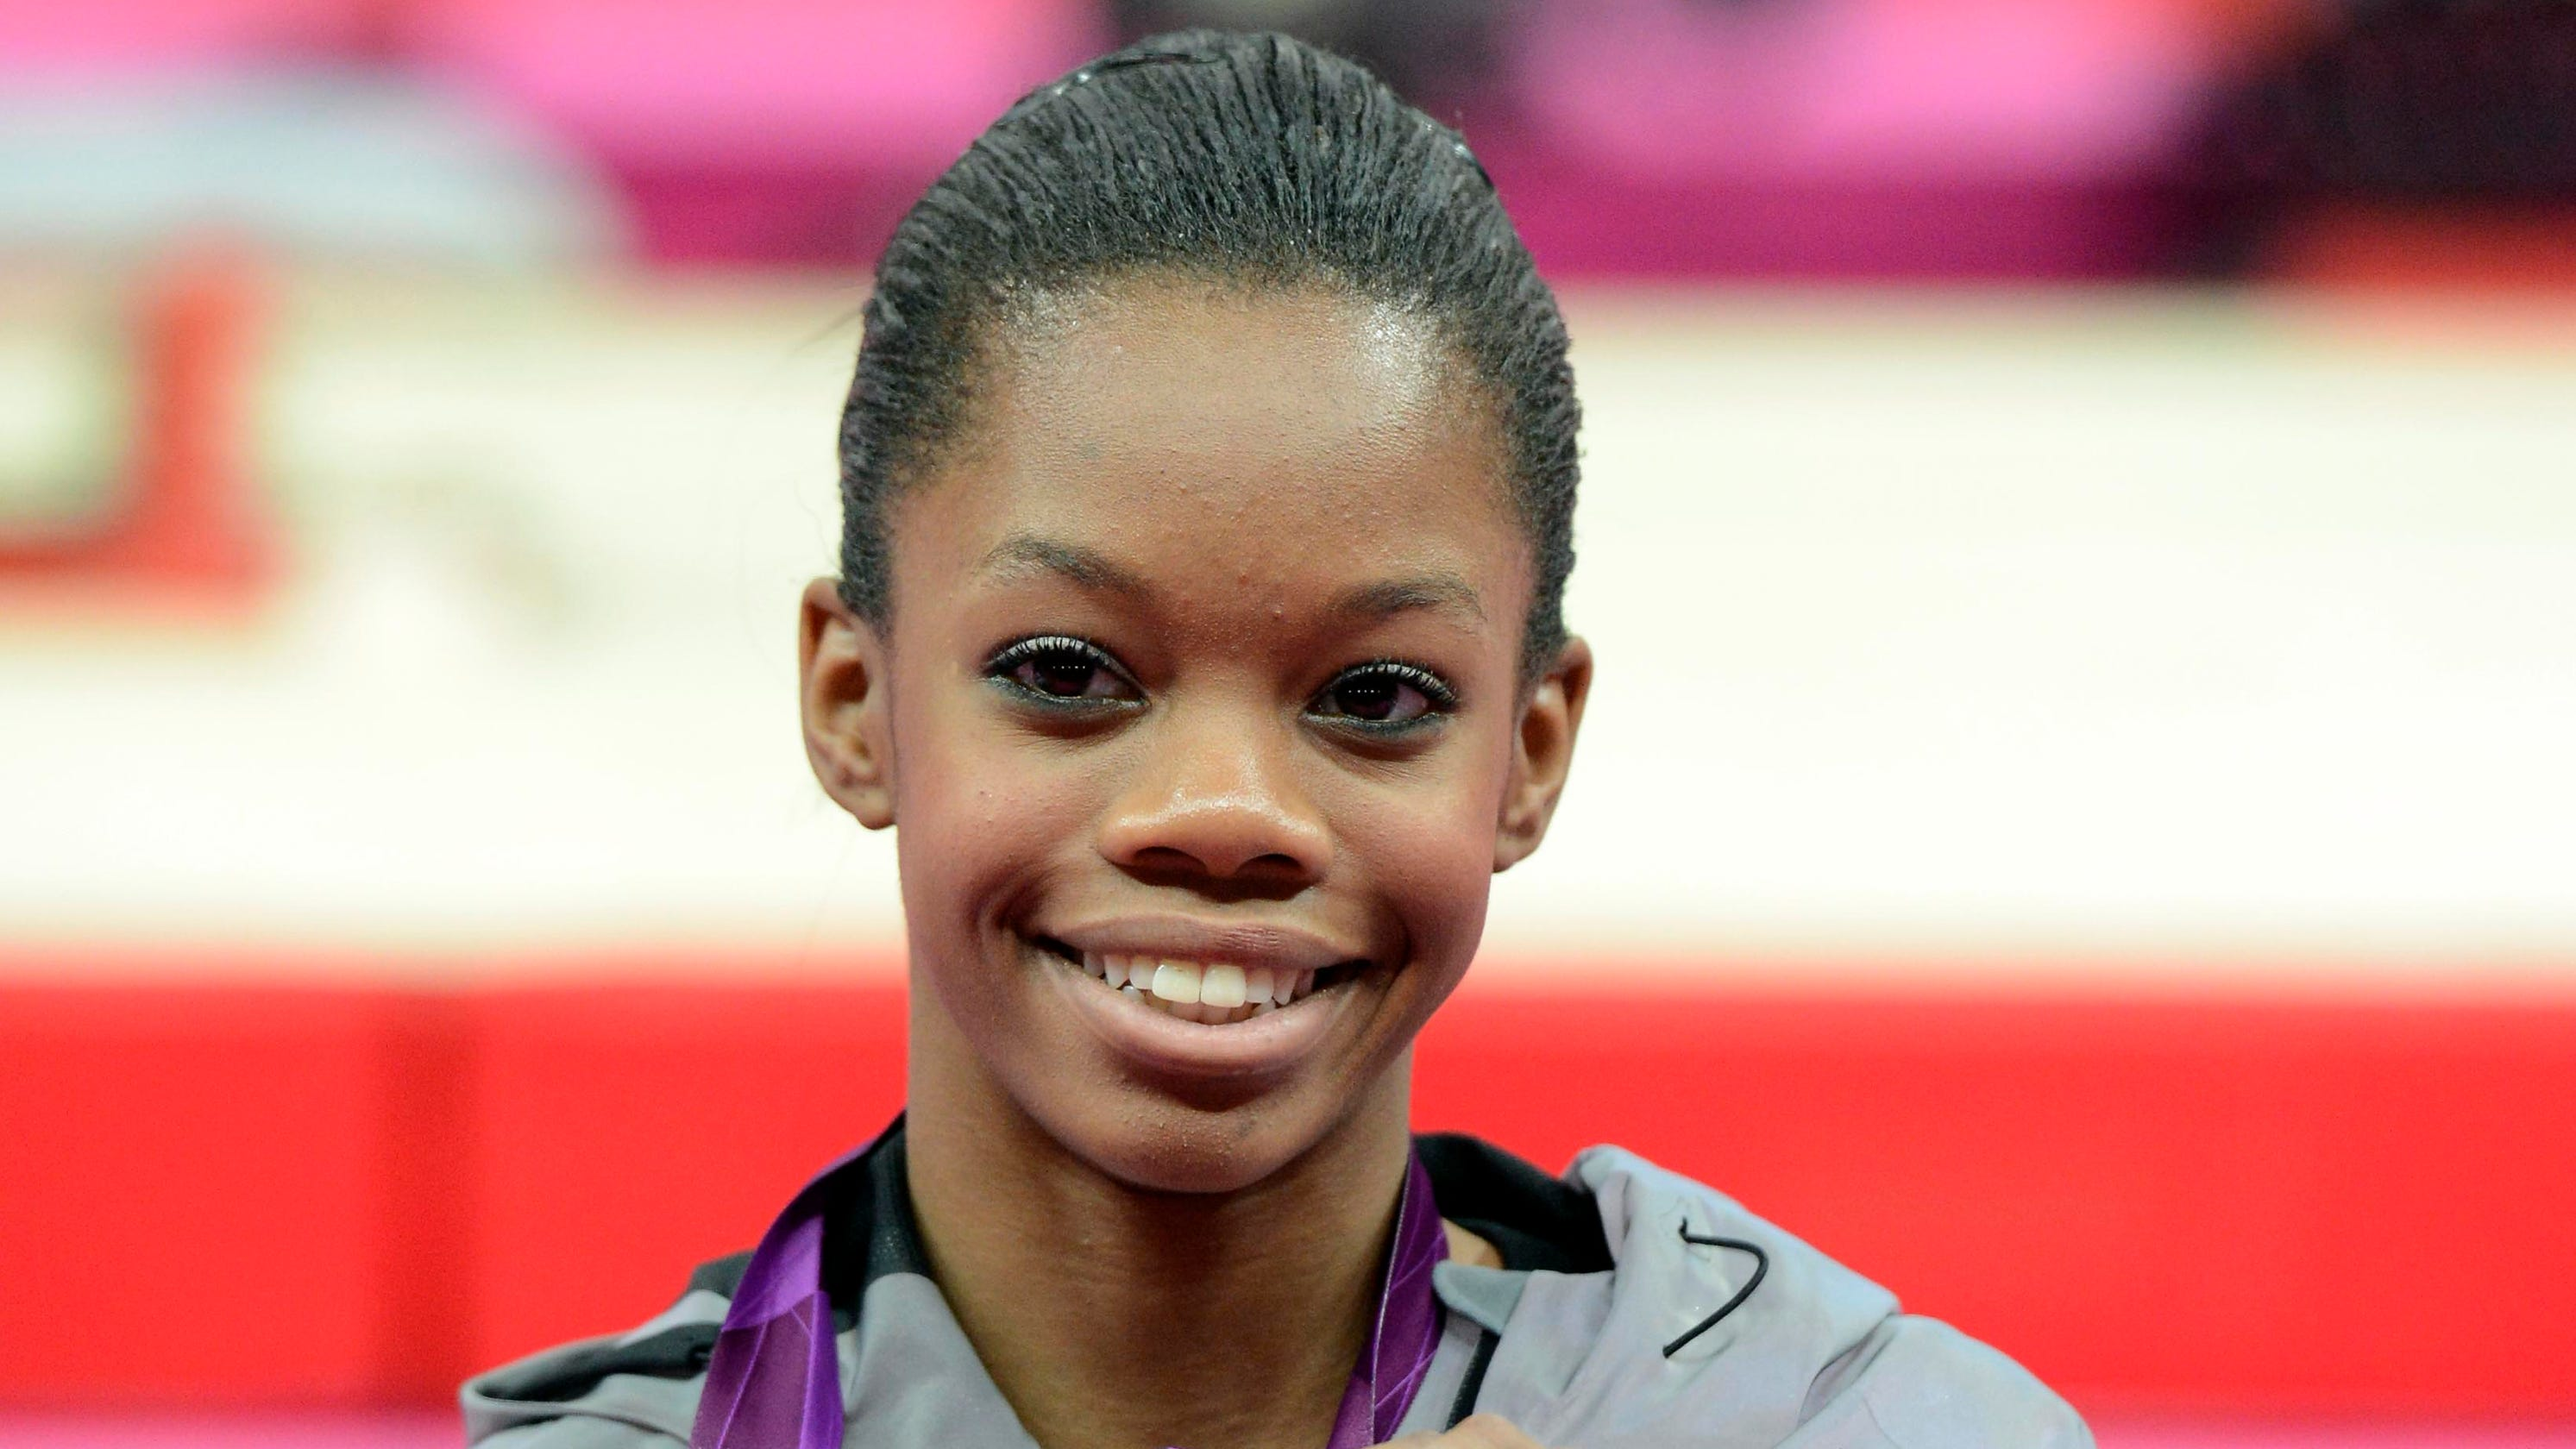 Gabby Douglas lifted gymnastics and Black athletes to new heights in 2012